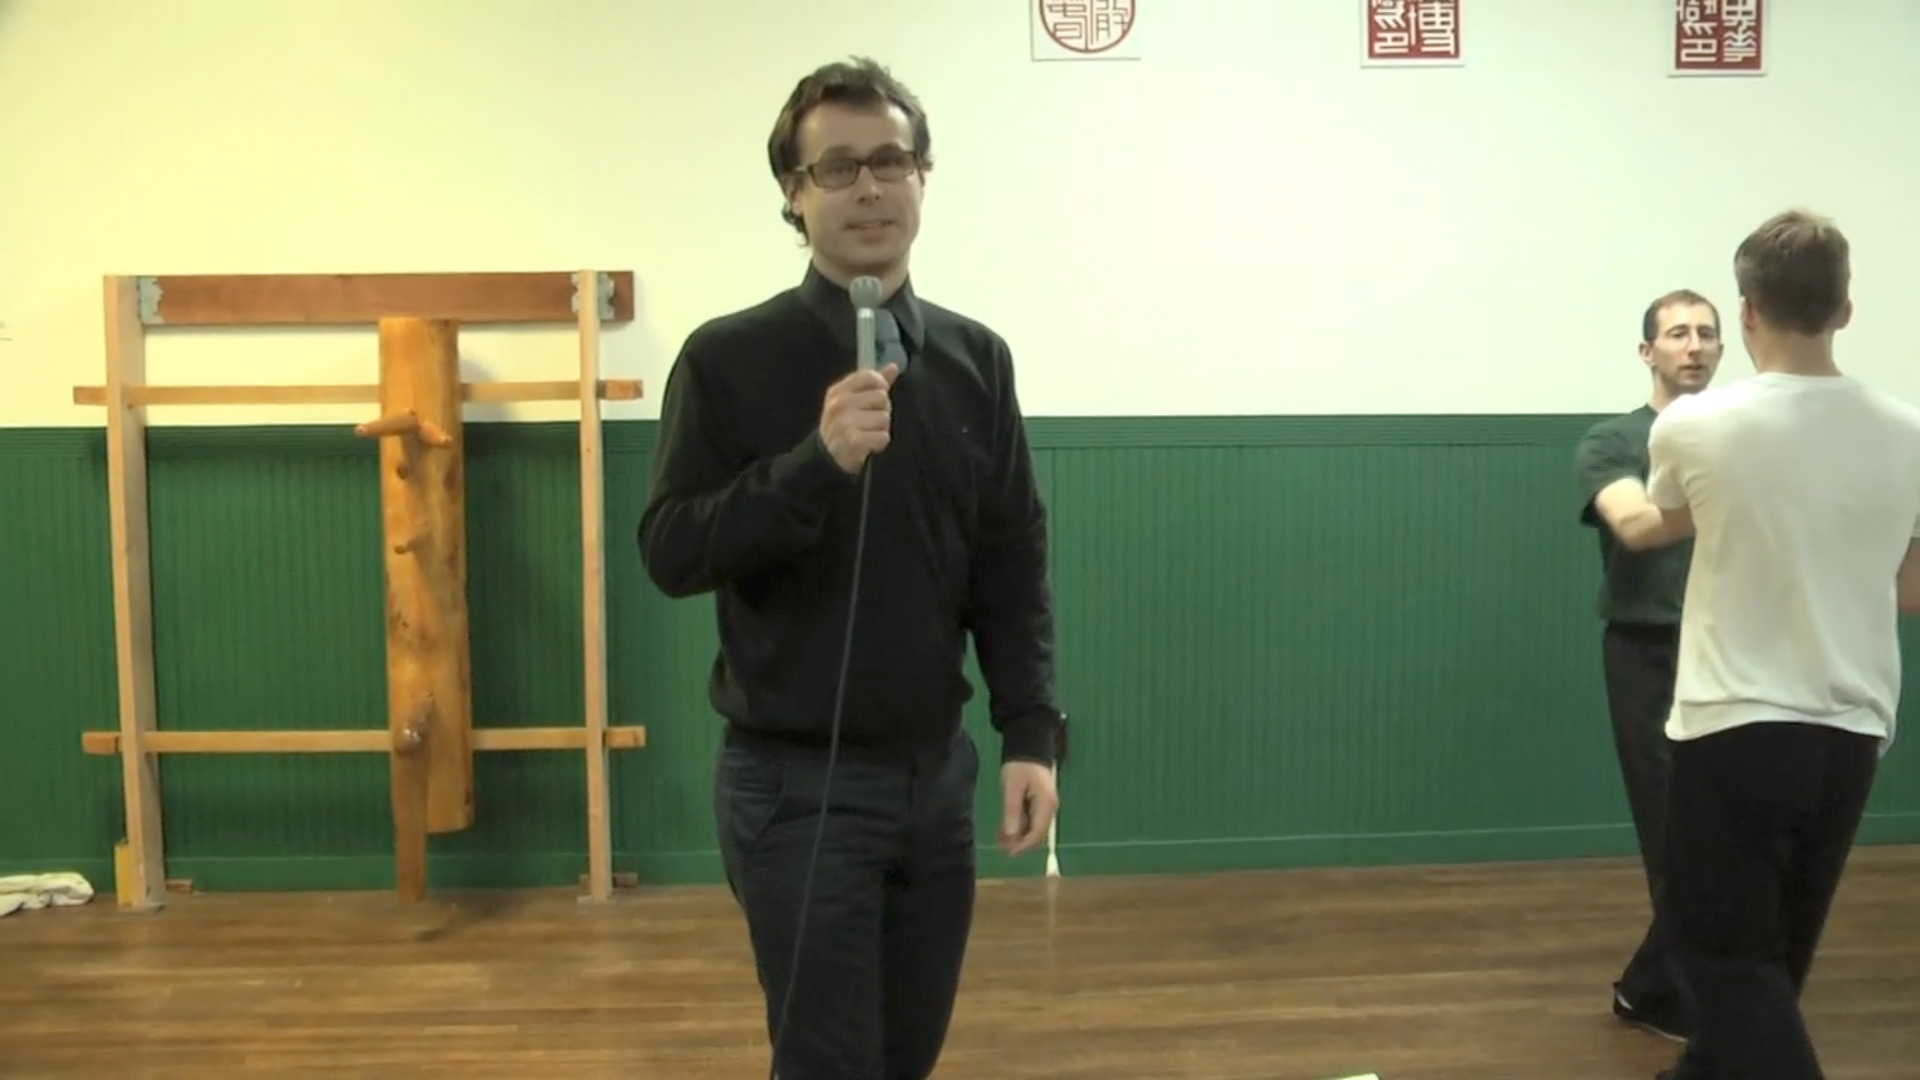 A snapshot from my time at Quinnipiac. Here, I am recording a stand up for a video story. Hamden, CT, U.S.A. 2014.